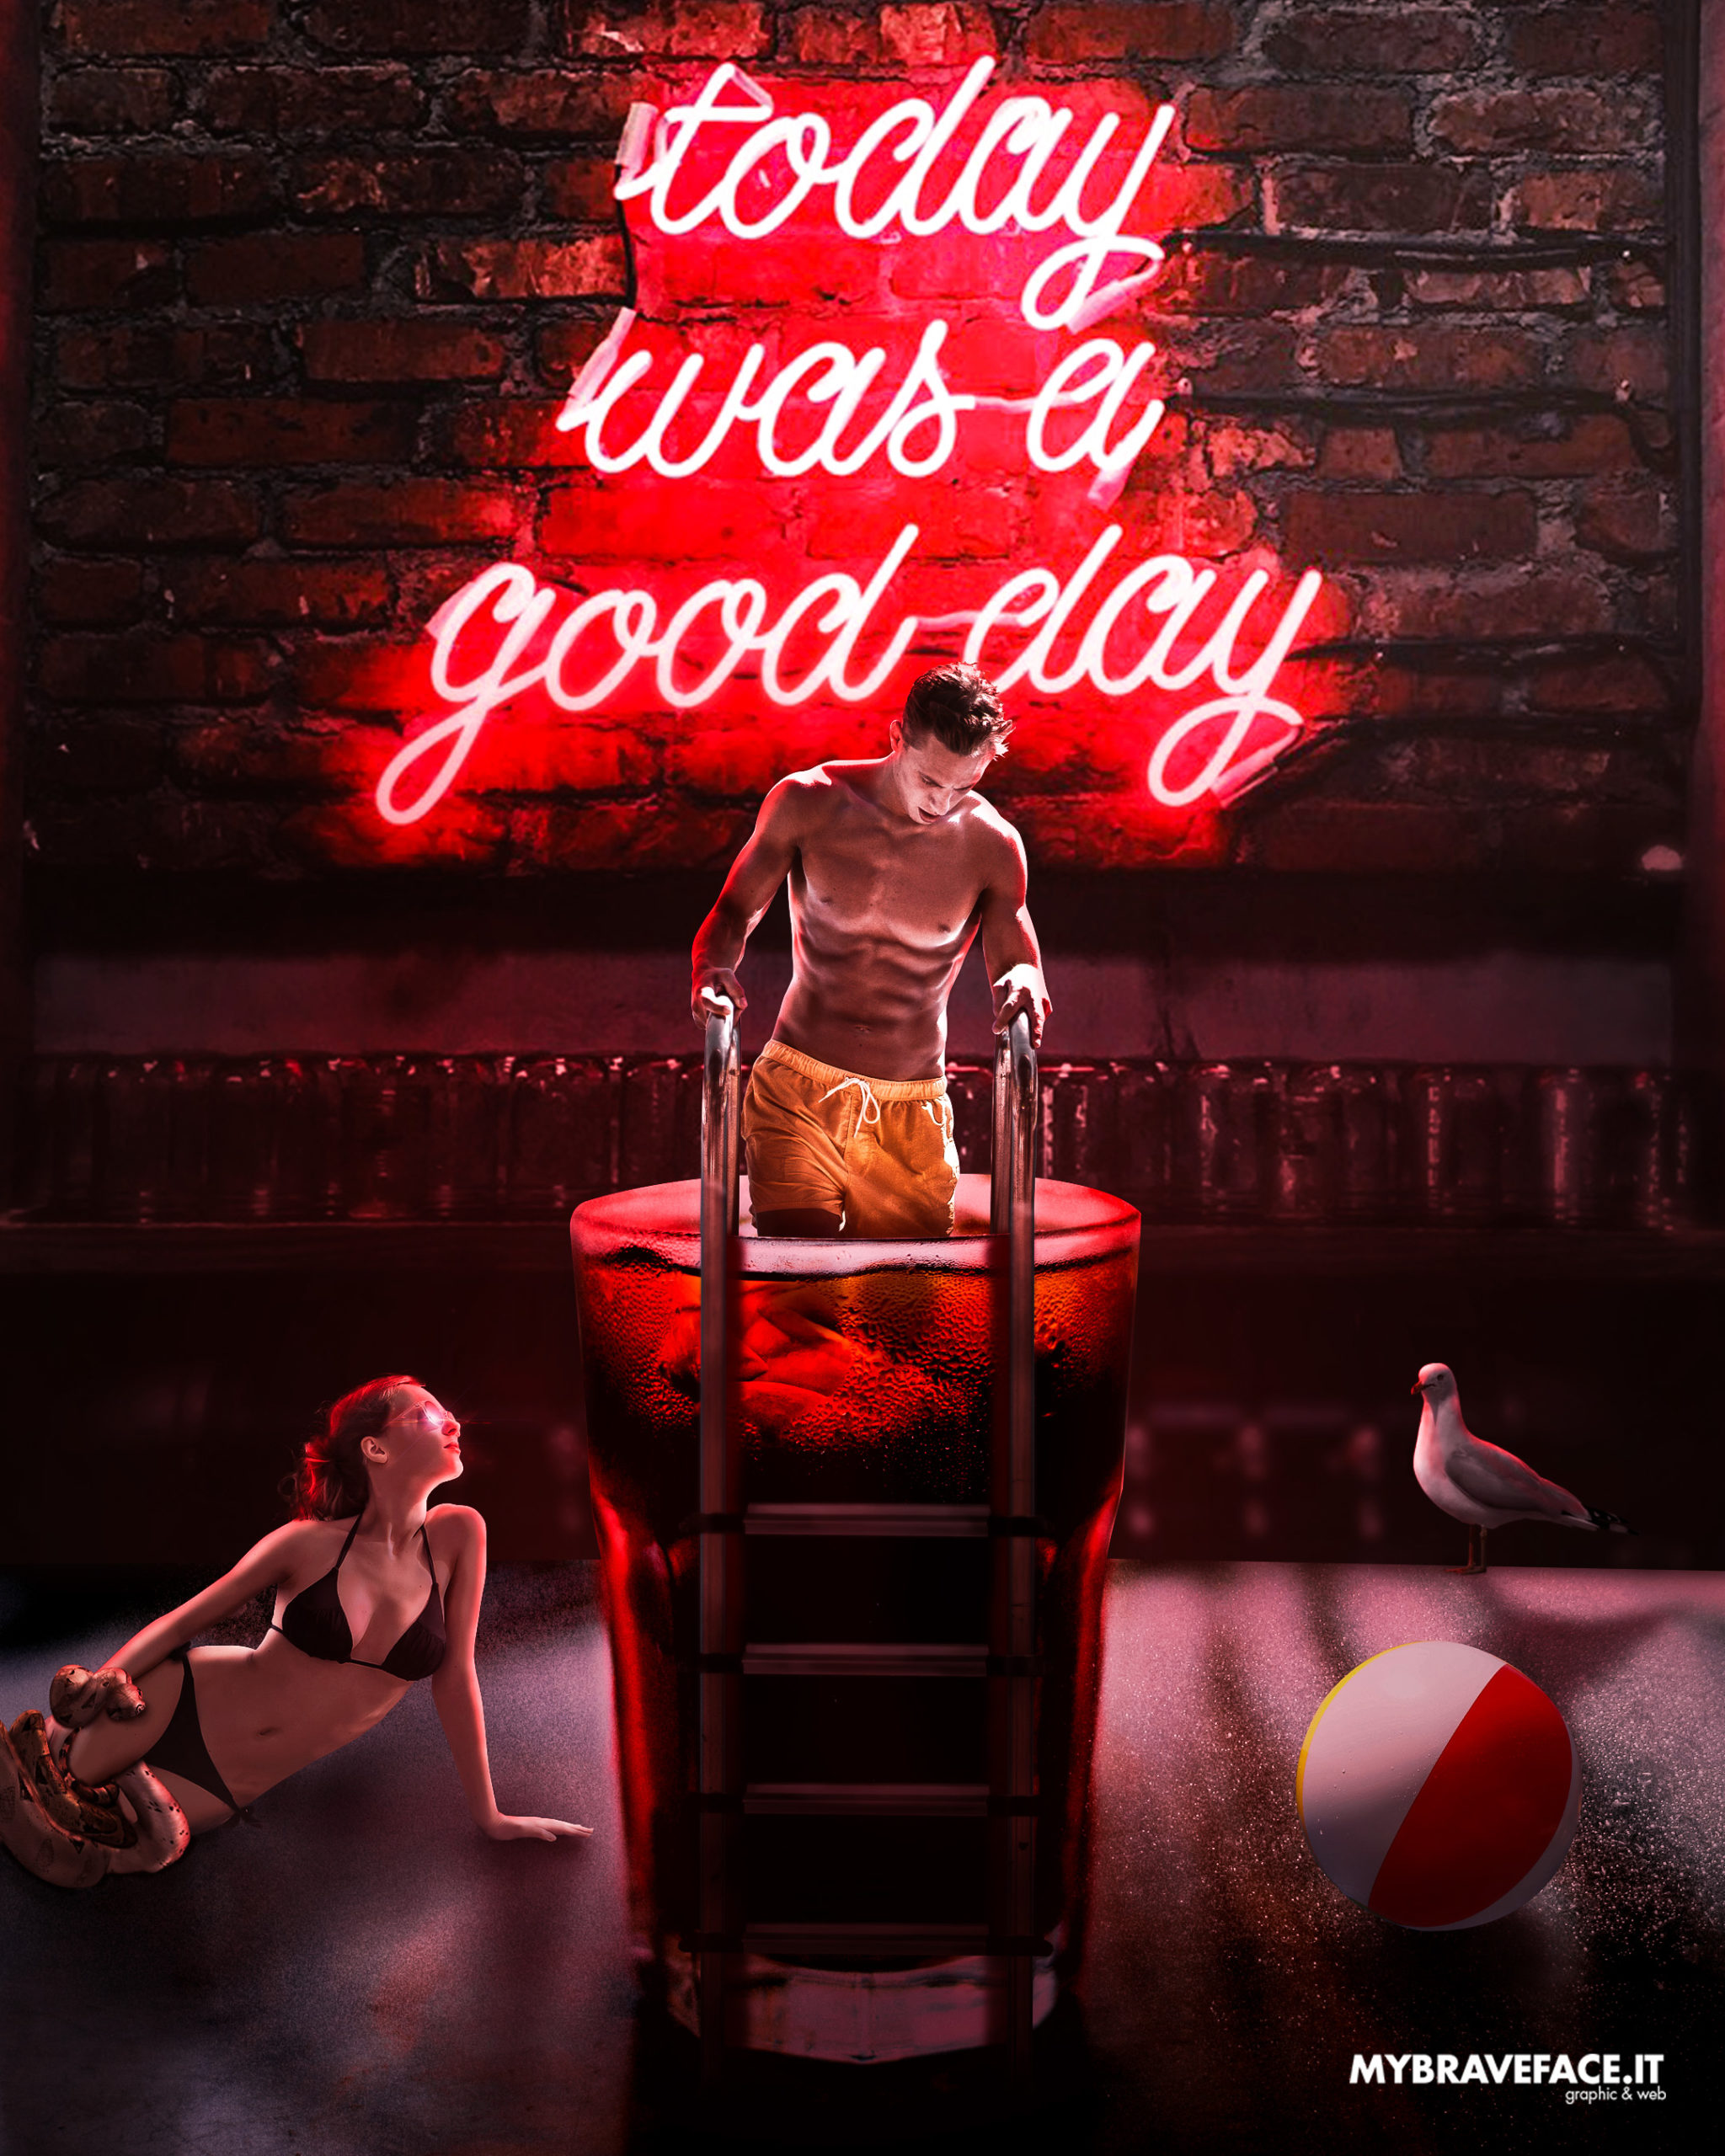 Neon bar - photomanipulation